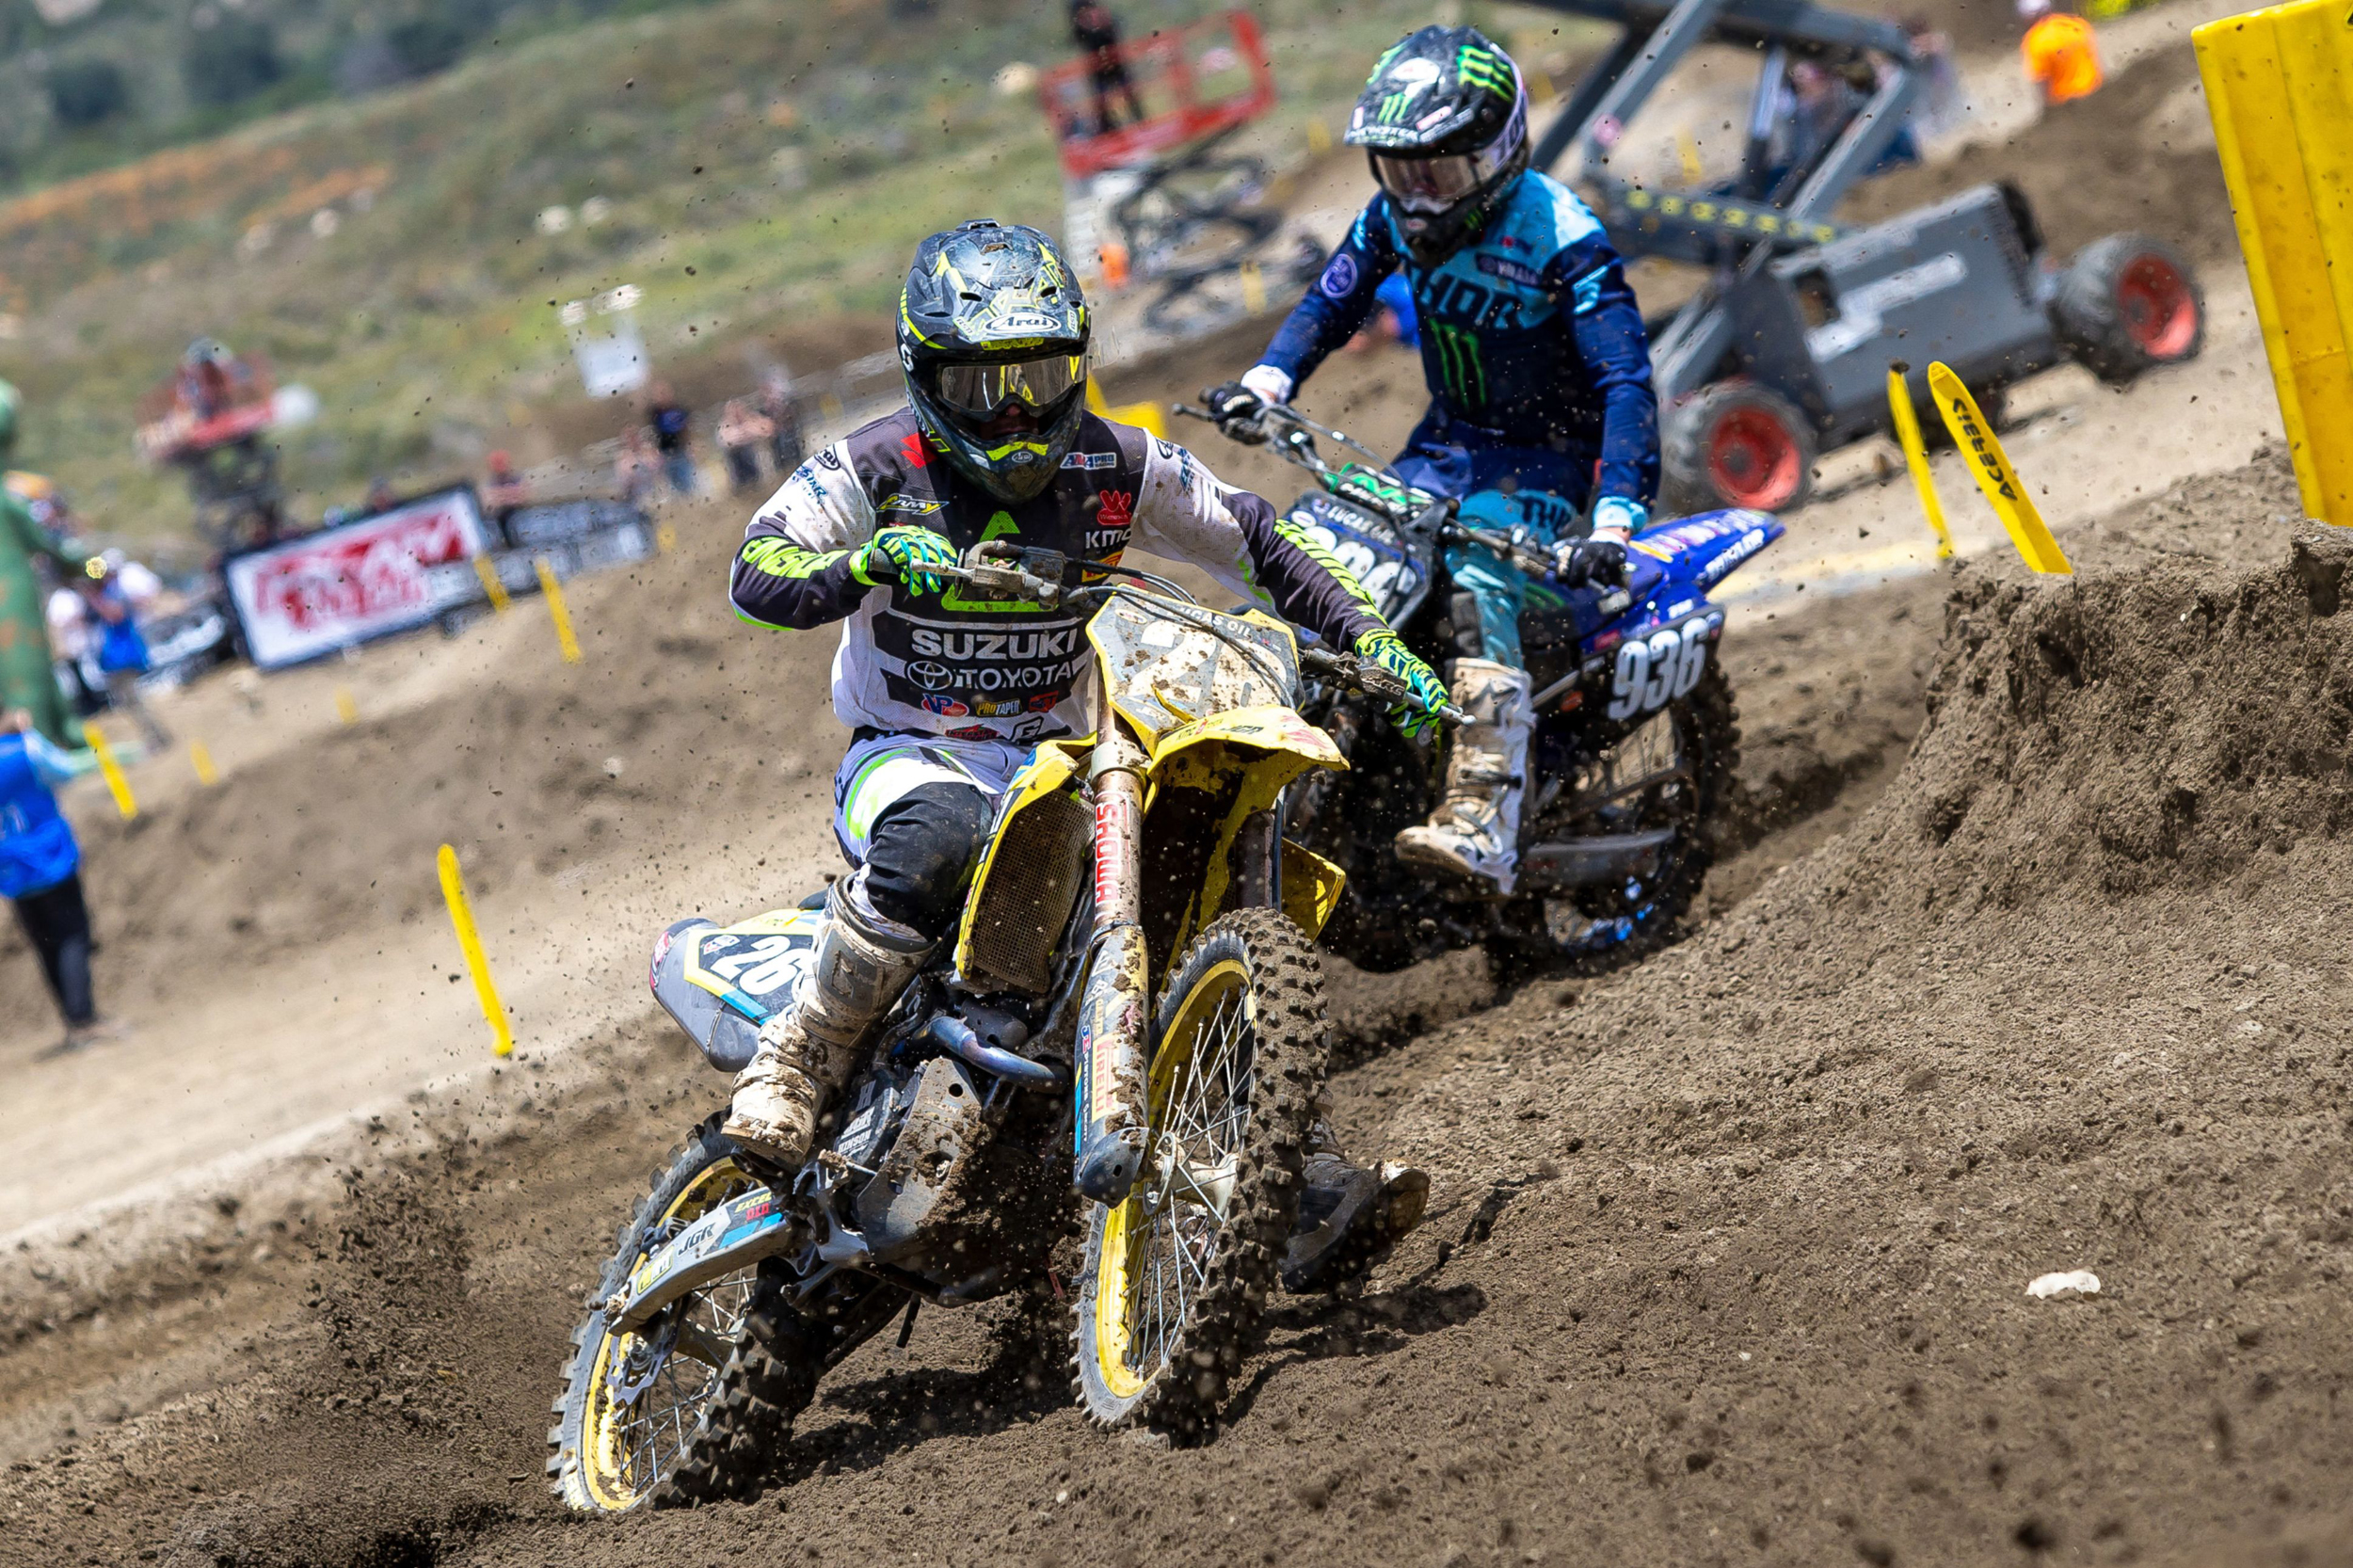 Alex Martin (#26) challenges for the lead on his RM-Z250